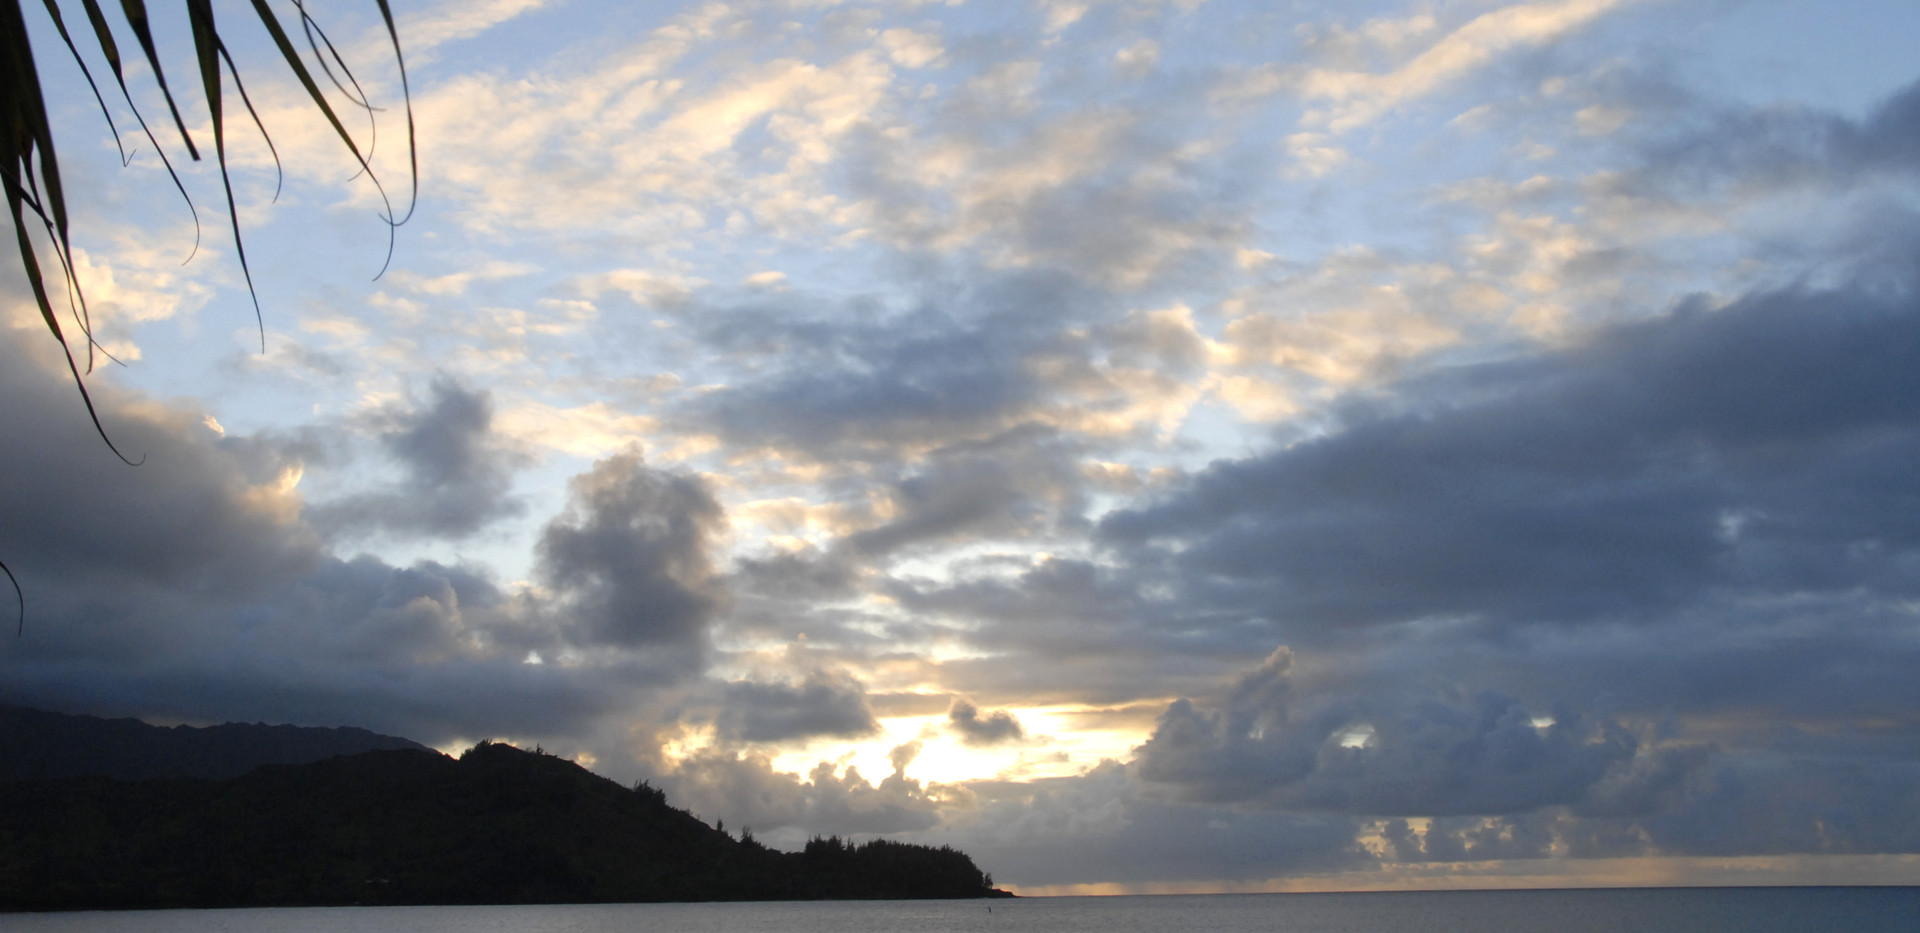 Experience a Sunset on Hanalei Bay